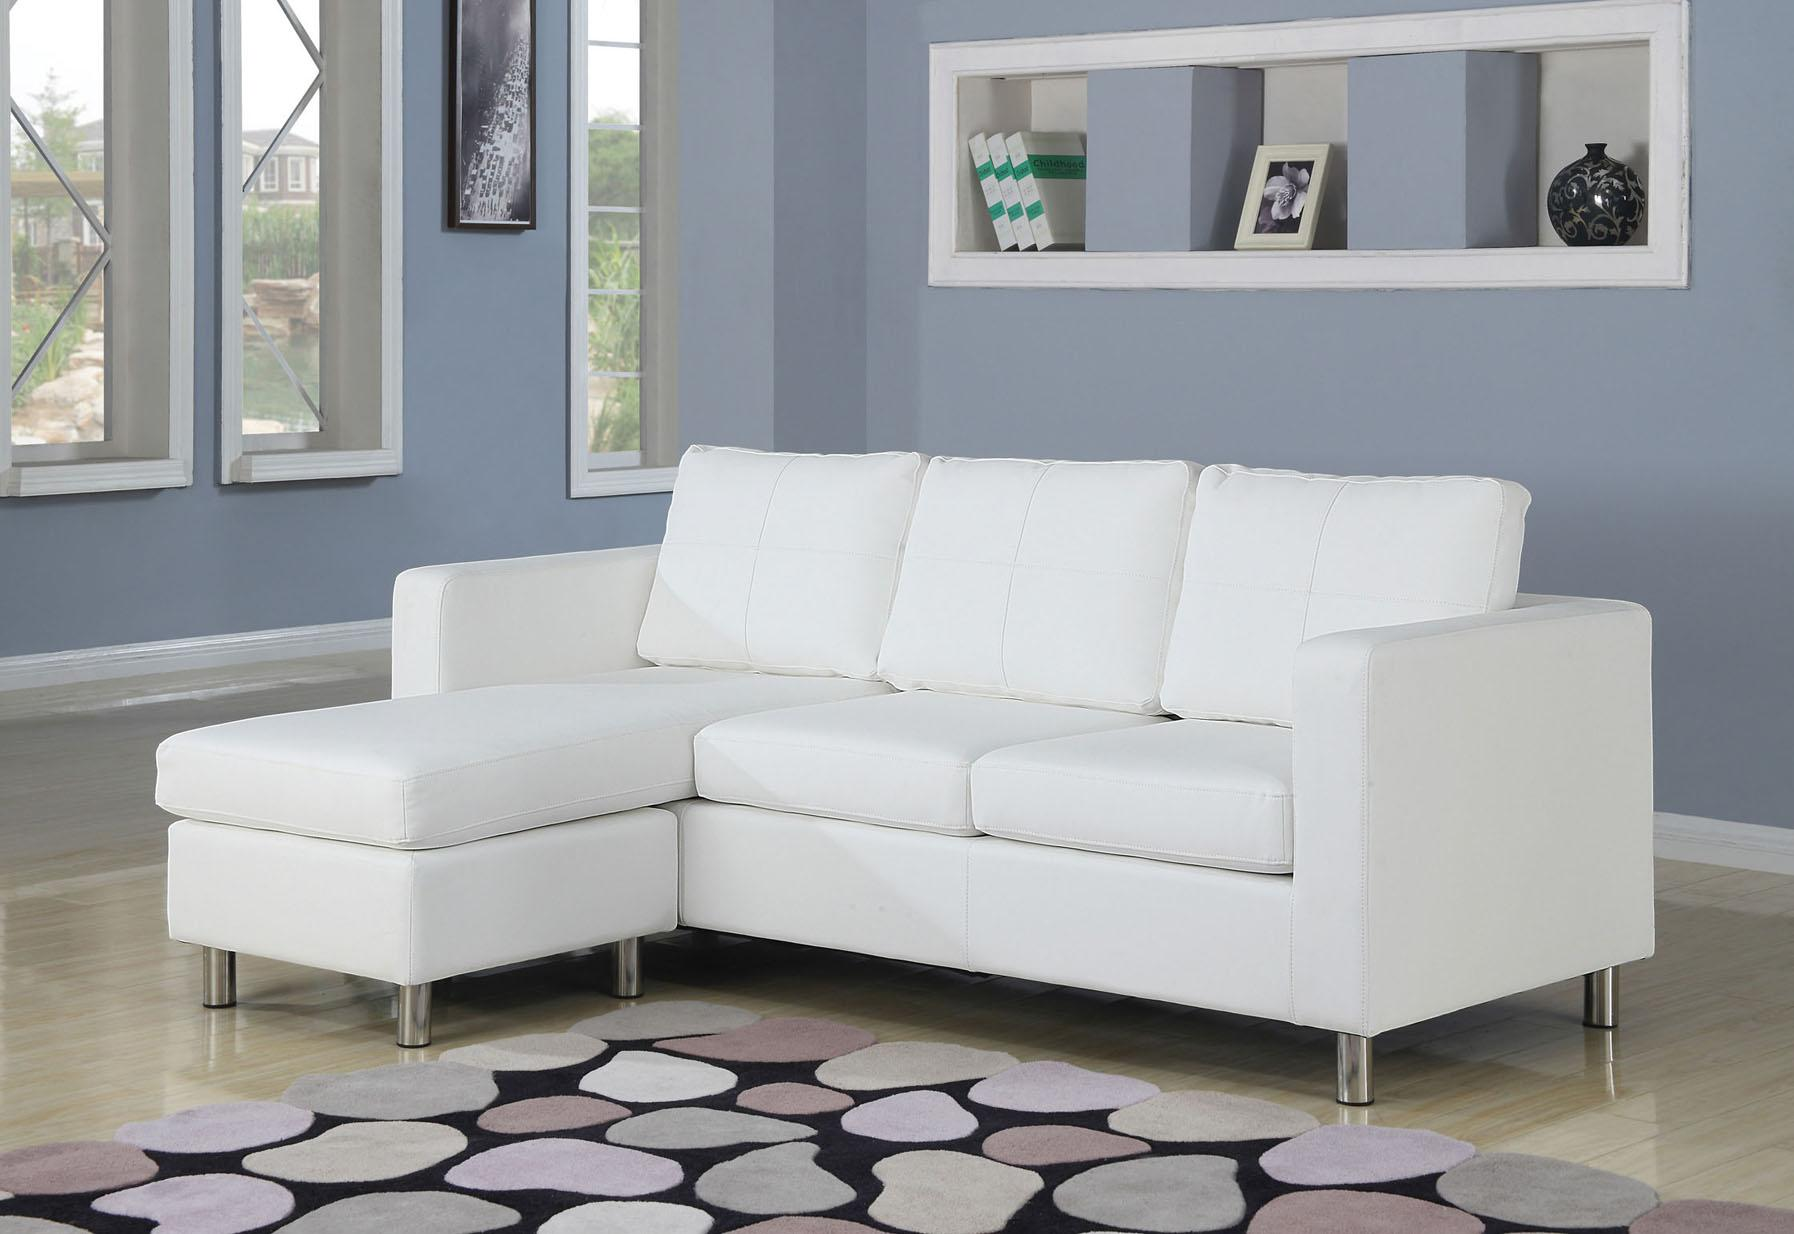 Acme Furniture Kemen Reversible Chaise Sectional - Item Number: 15068